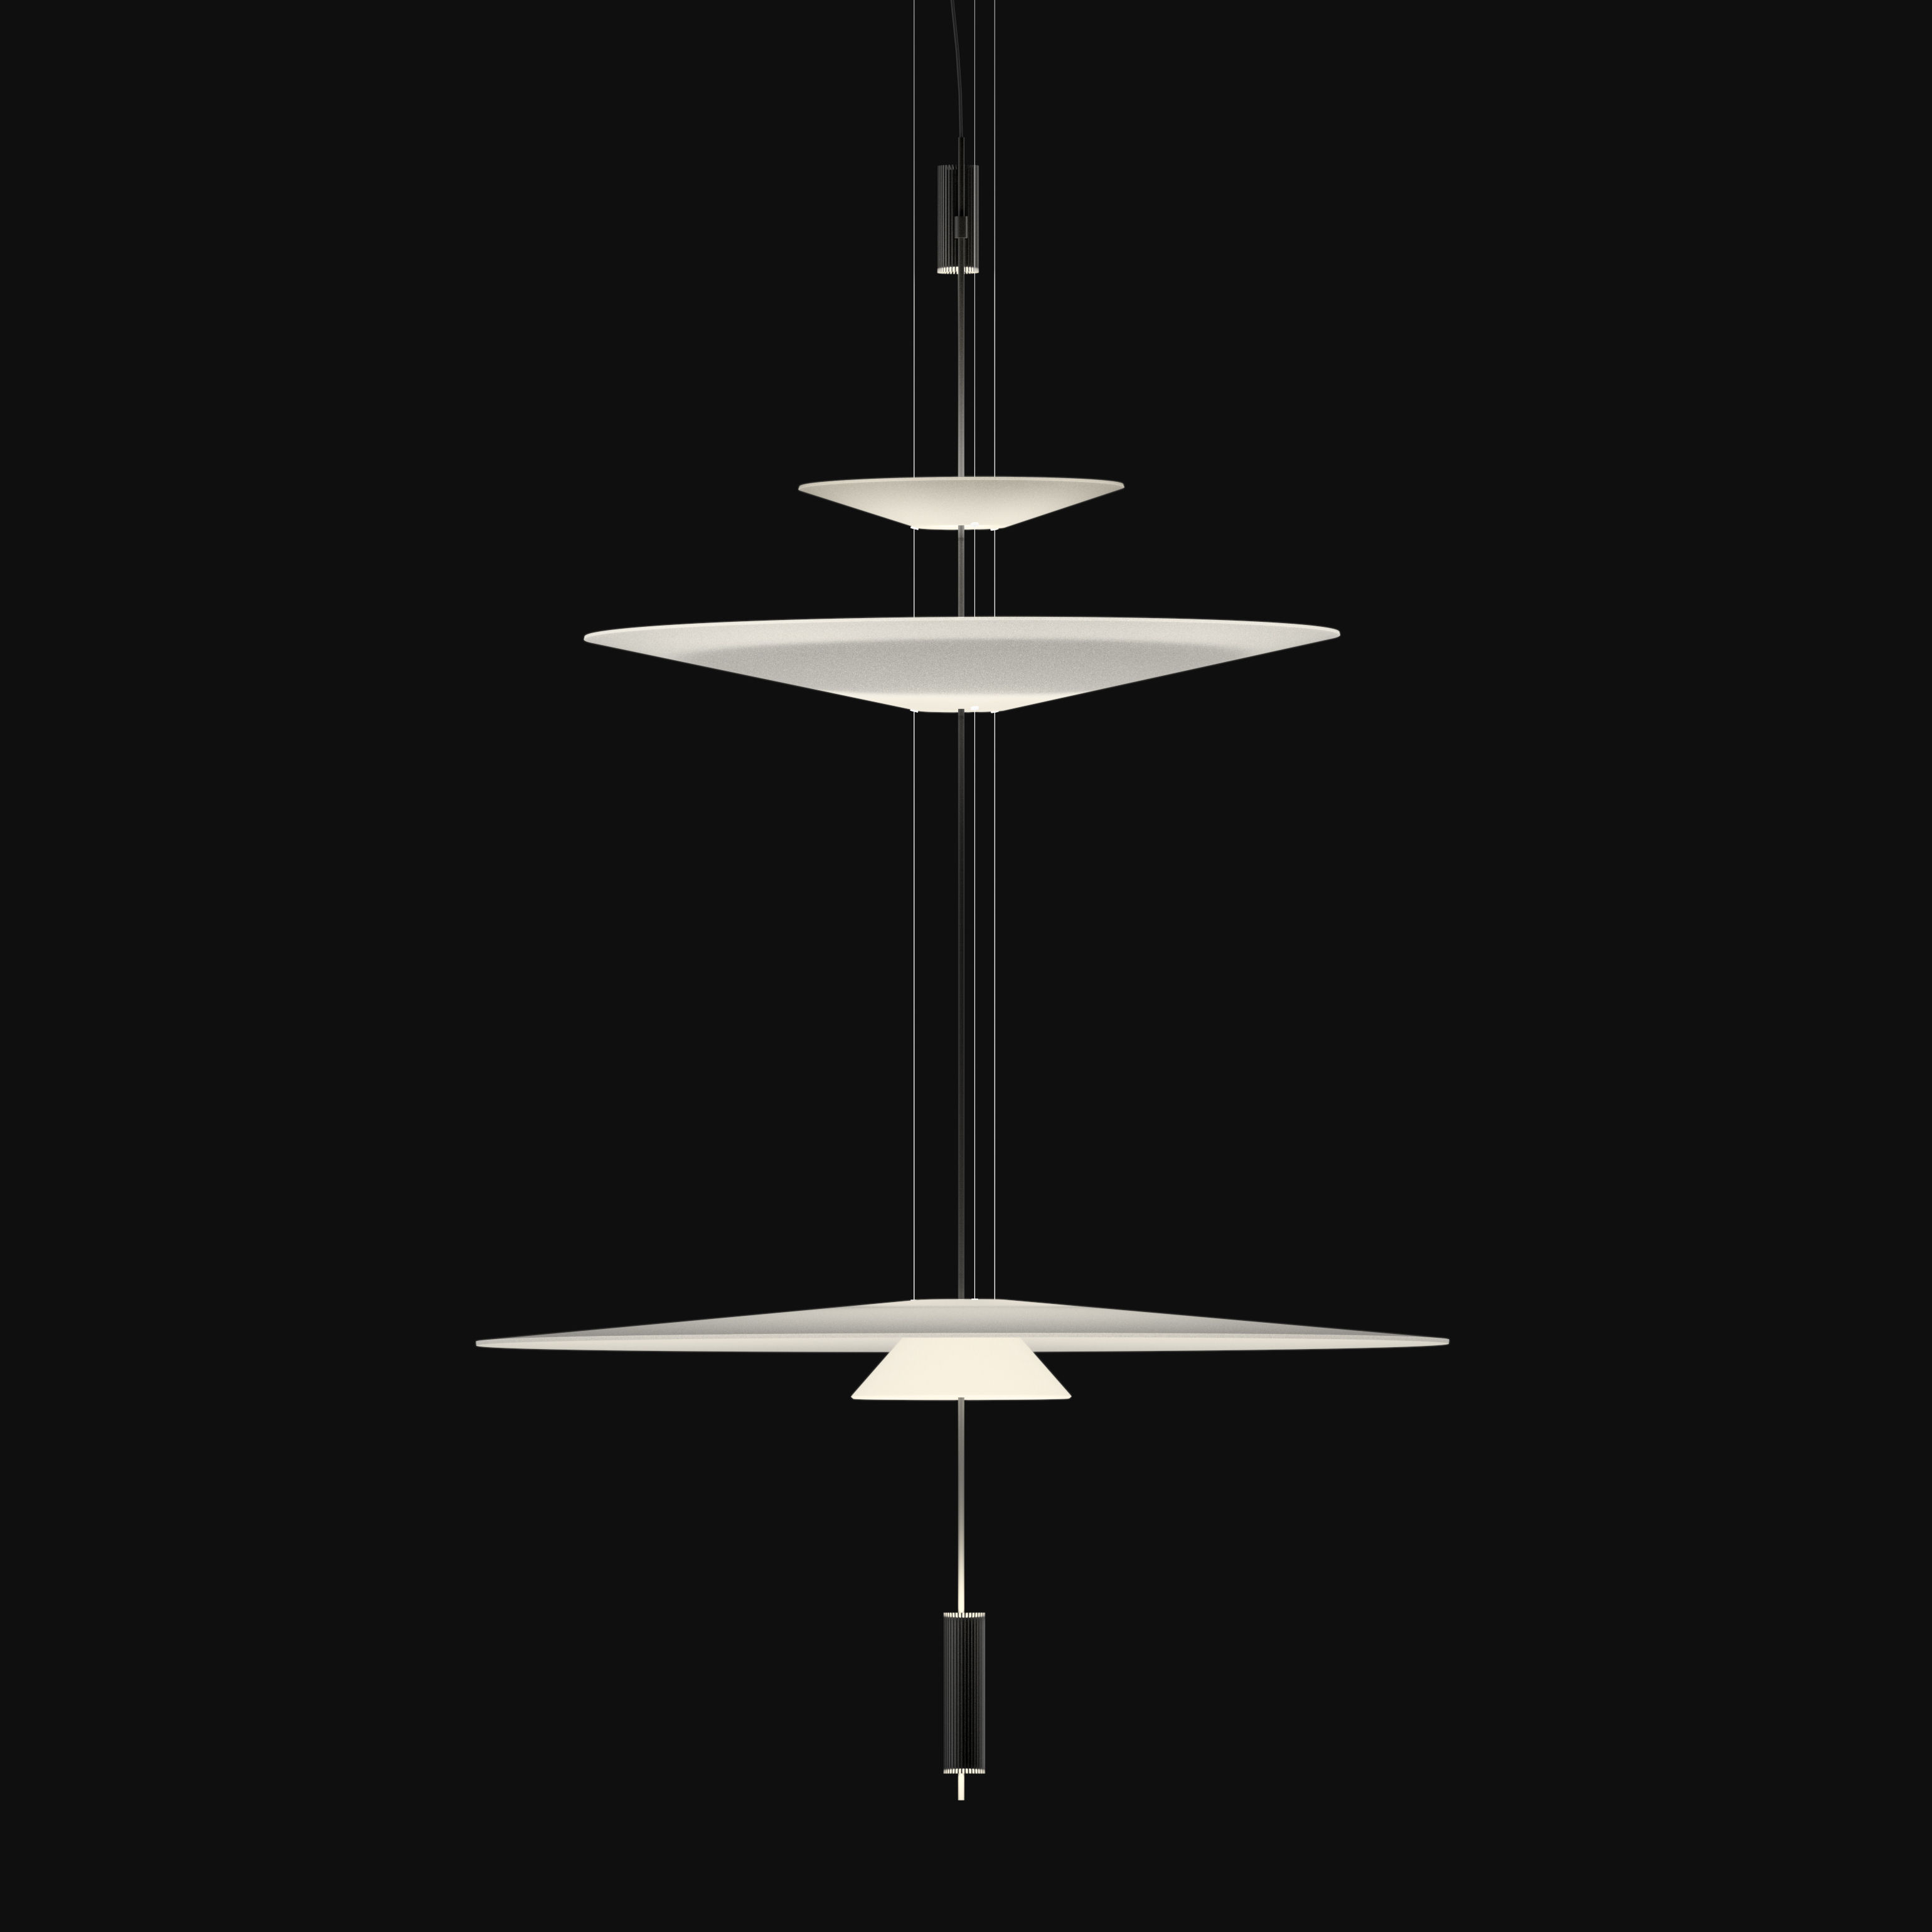 Lighting - Pendant Lighting - Flamingo Pendant - LED / Ø 90 cm by Vibia - Graphite diffuser / White shades - Acrylic, Metal, Methacrylate